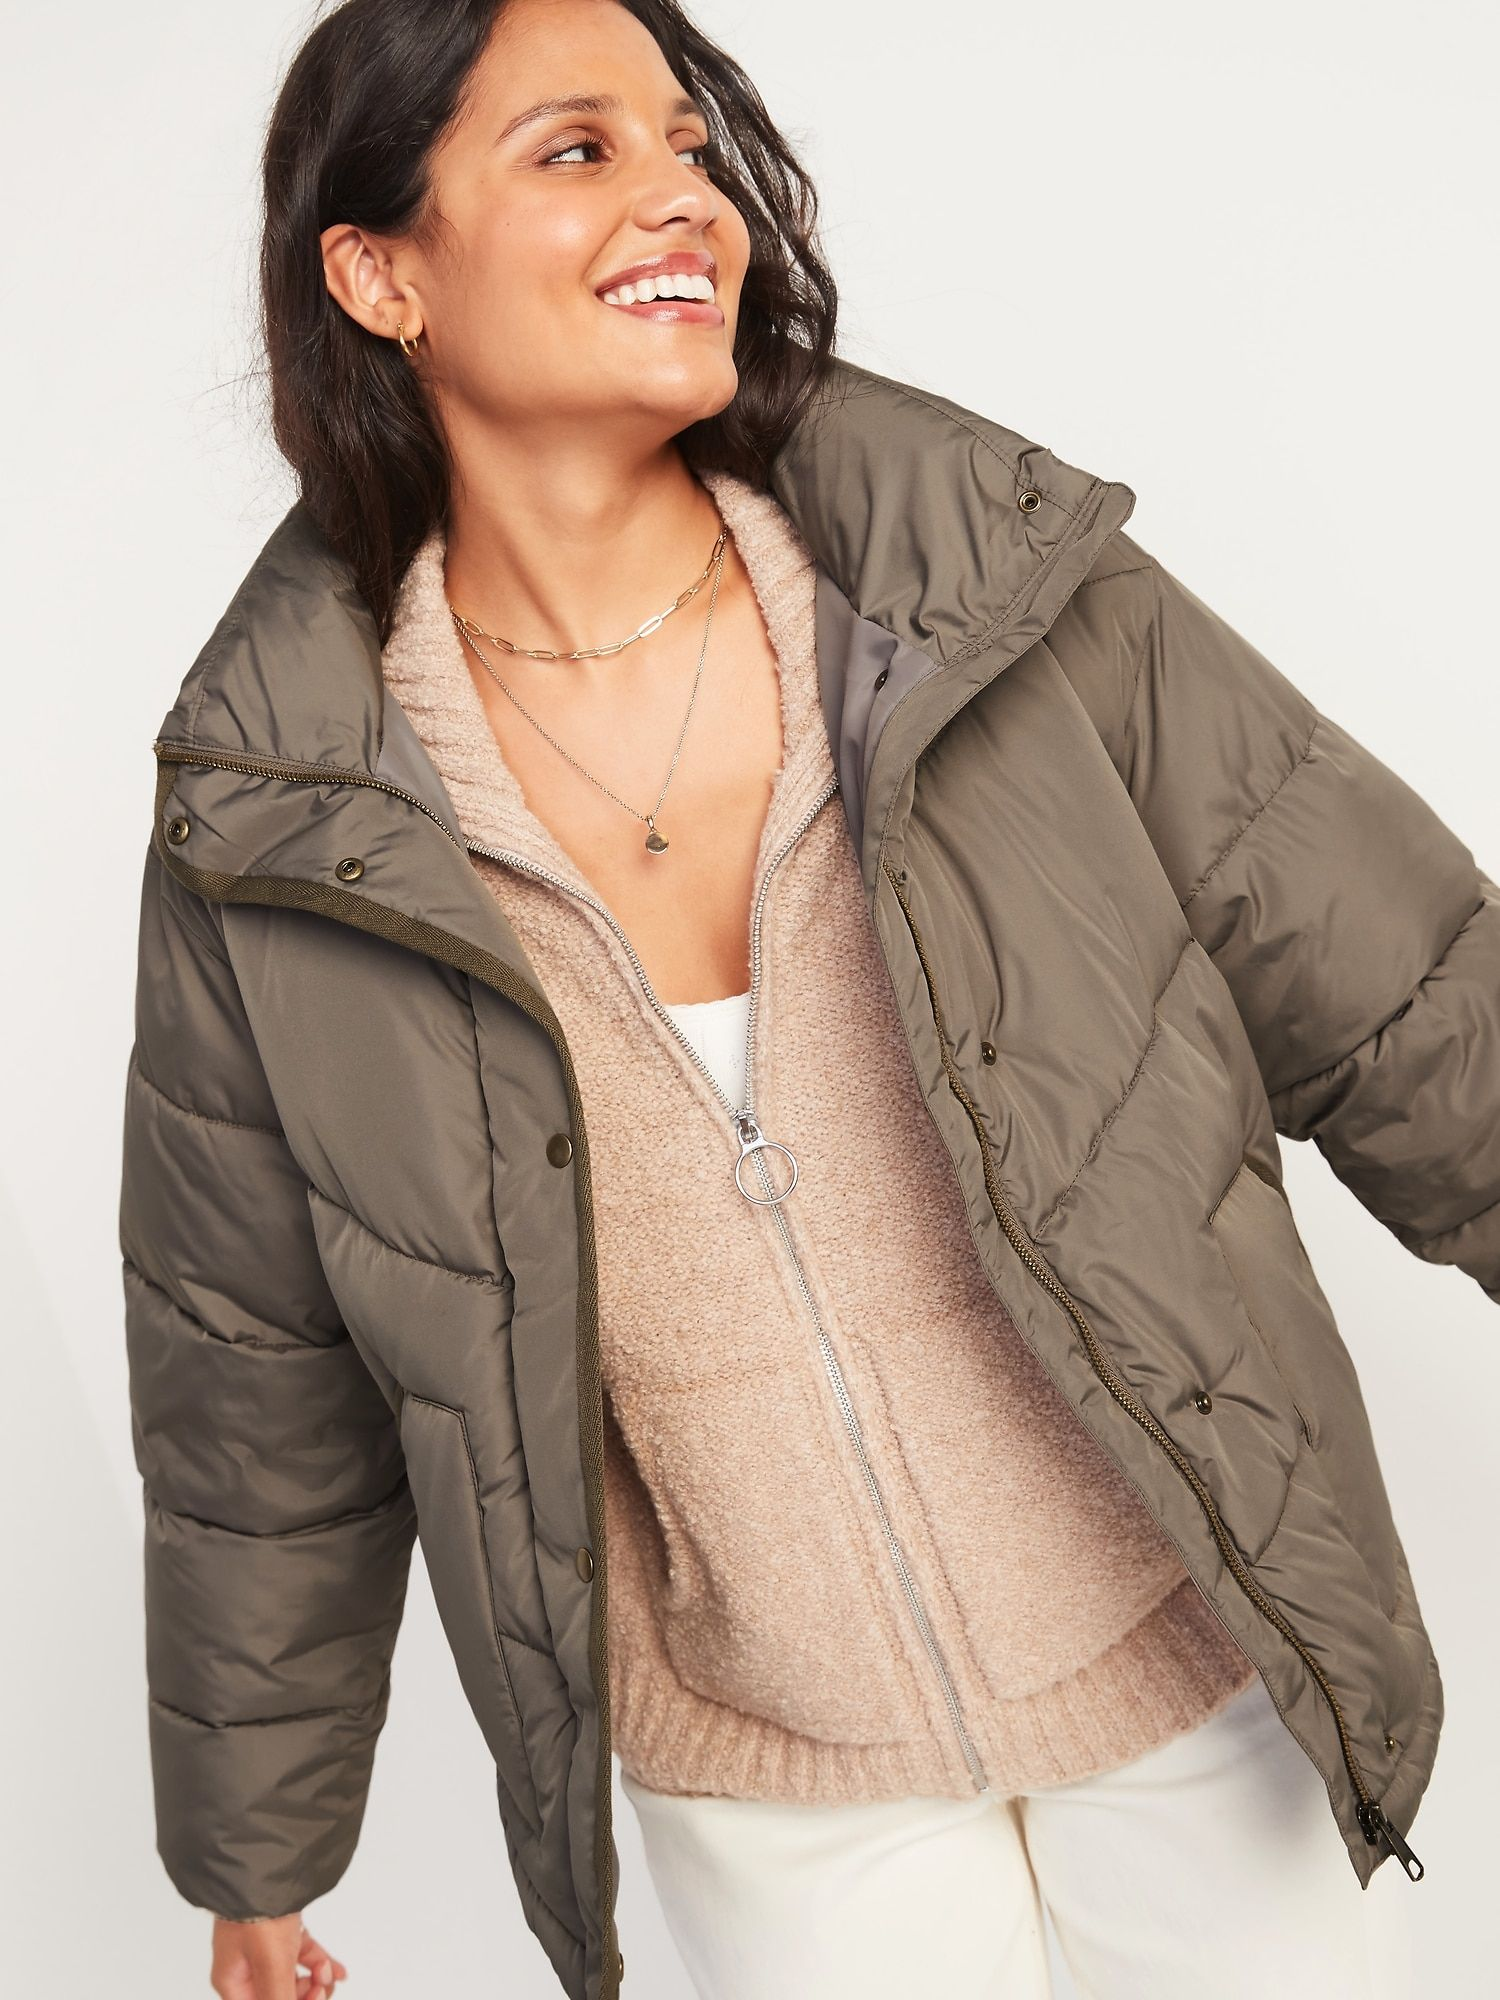 Quilted Utility Puffer Jacket For Women Old Navy In 2021 Jackets For Women Puffer Jacket Women Puffer Jackets [ 2000 x 1500 Pixel ]